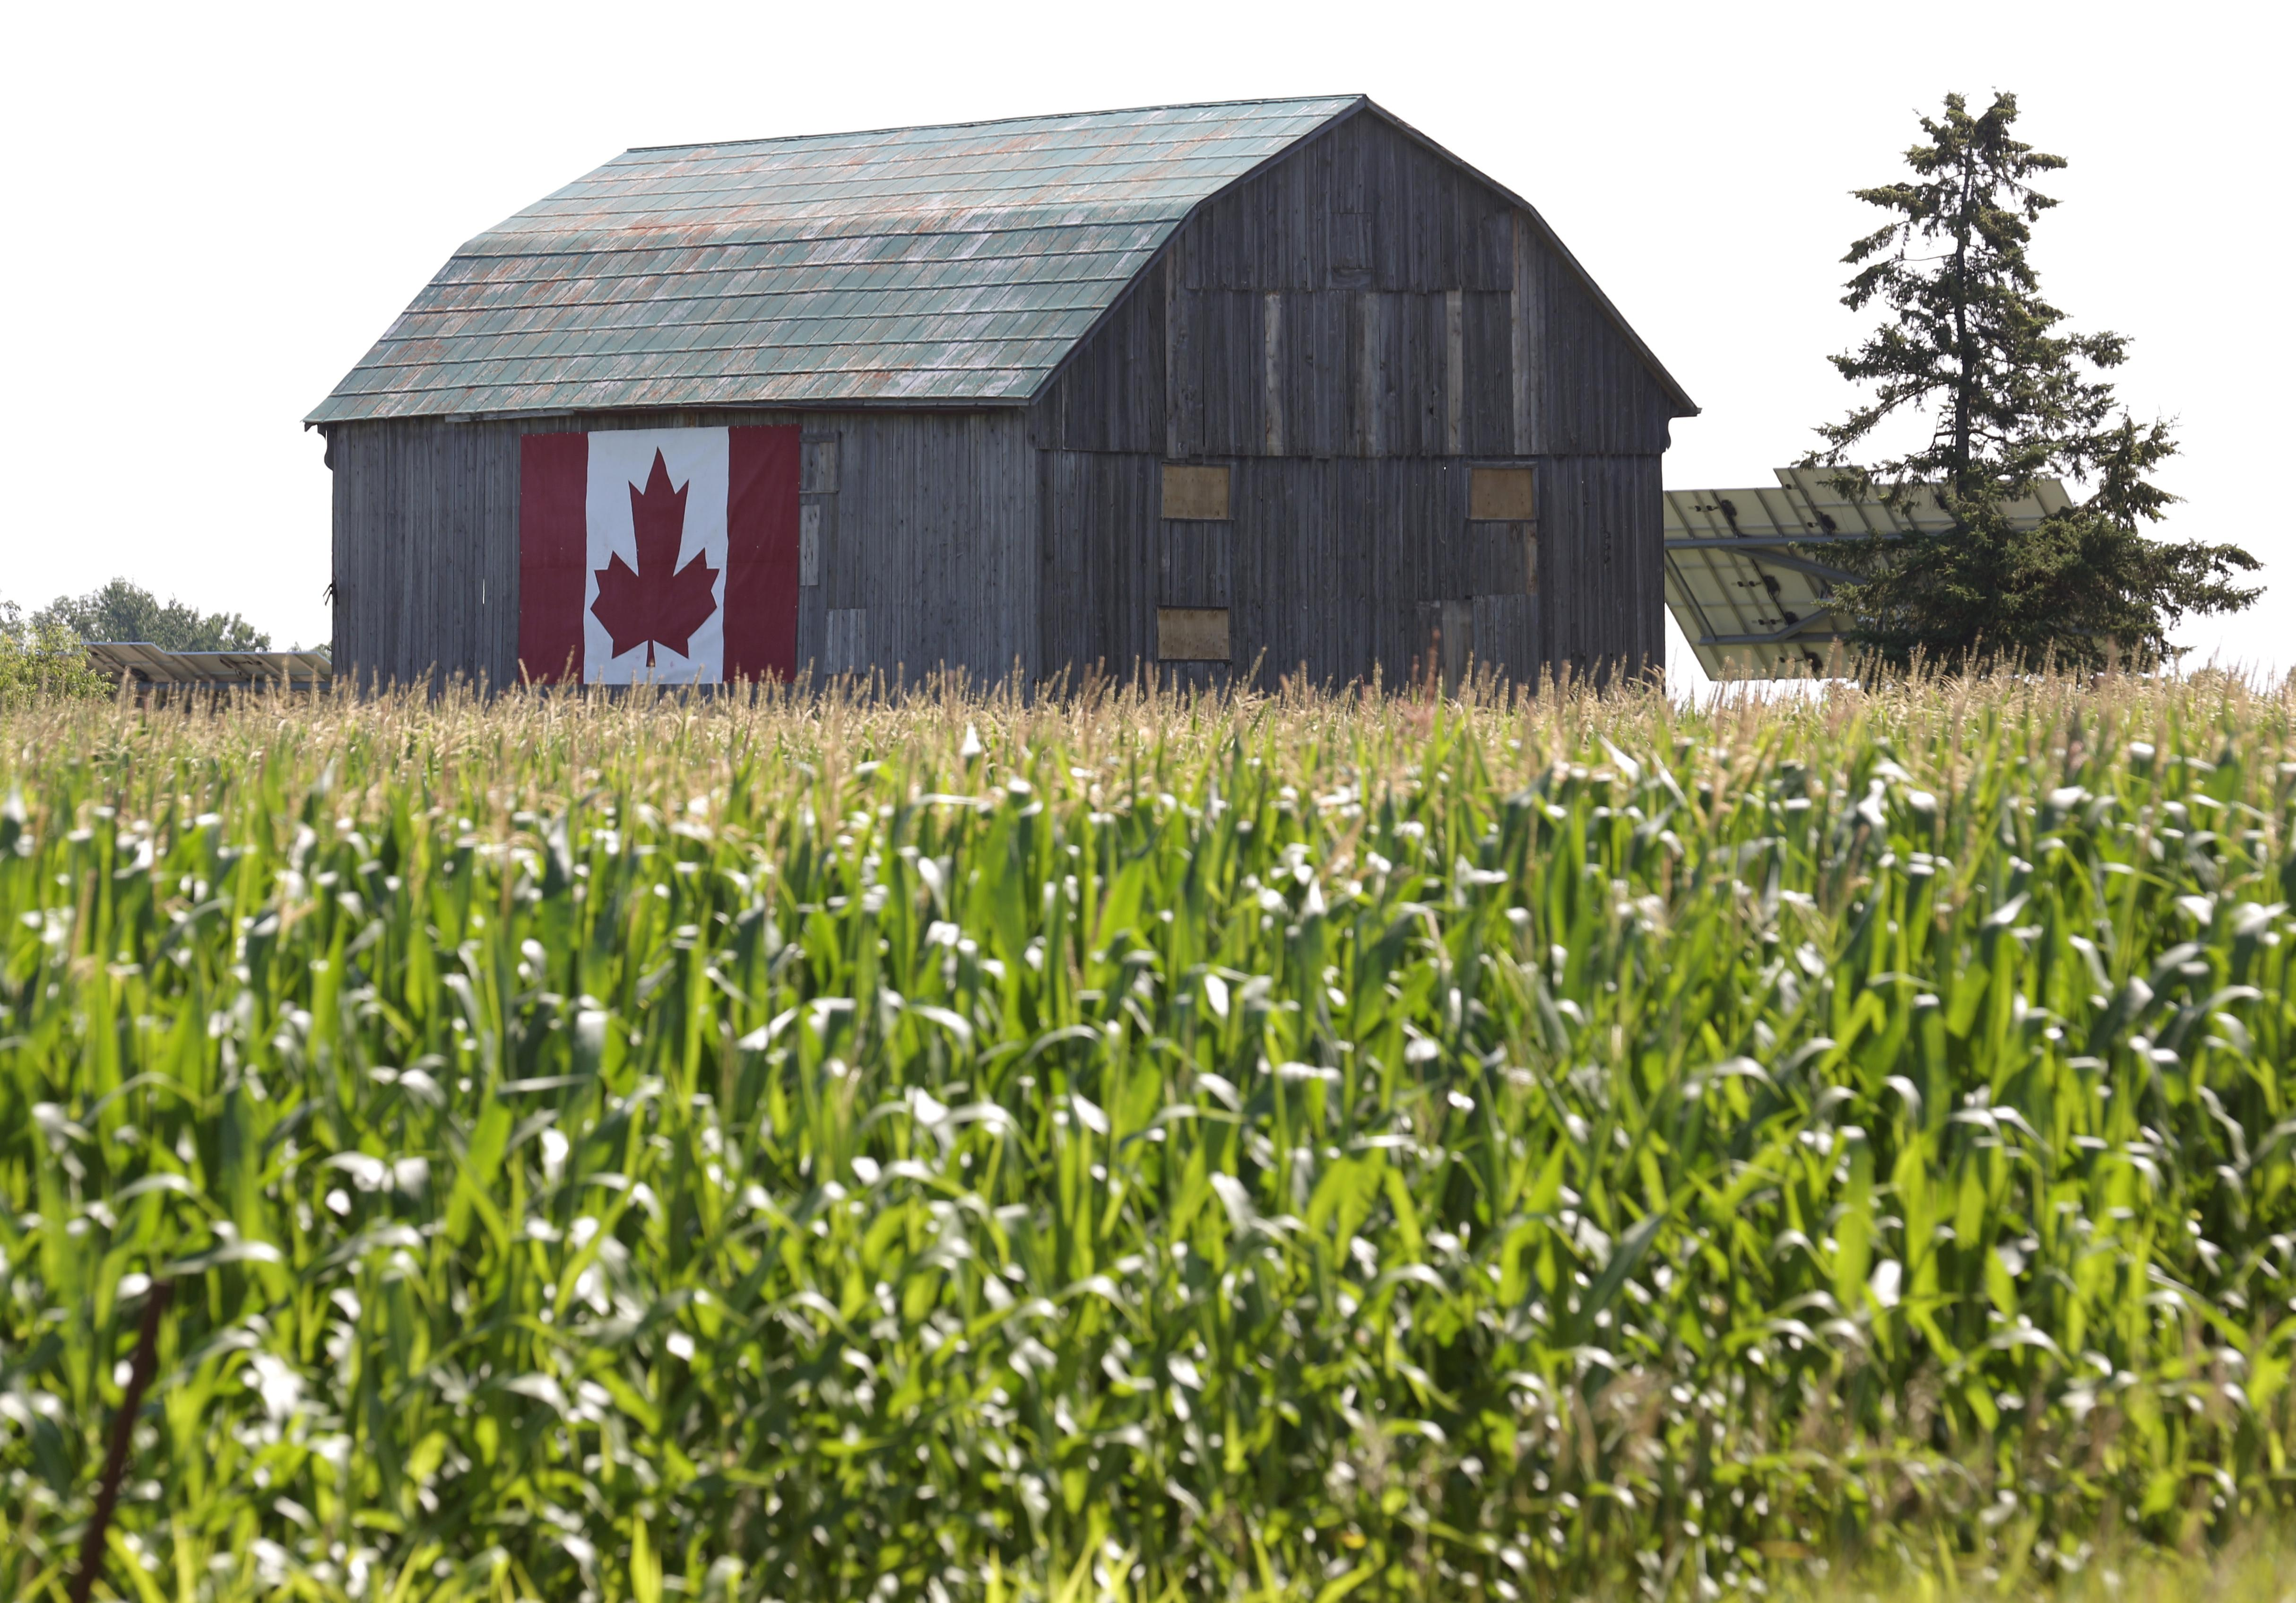 China snub, drought and debt shake finances of Canada's farmers